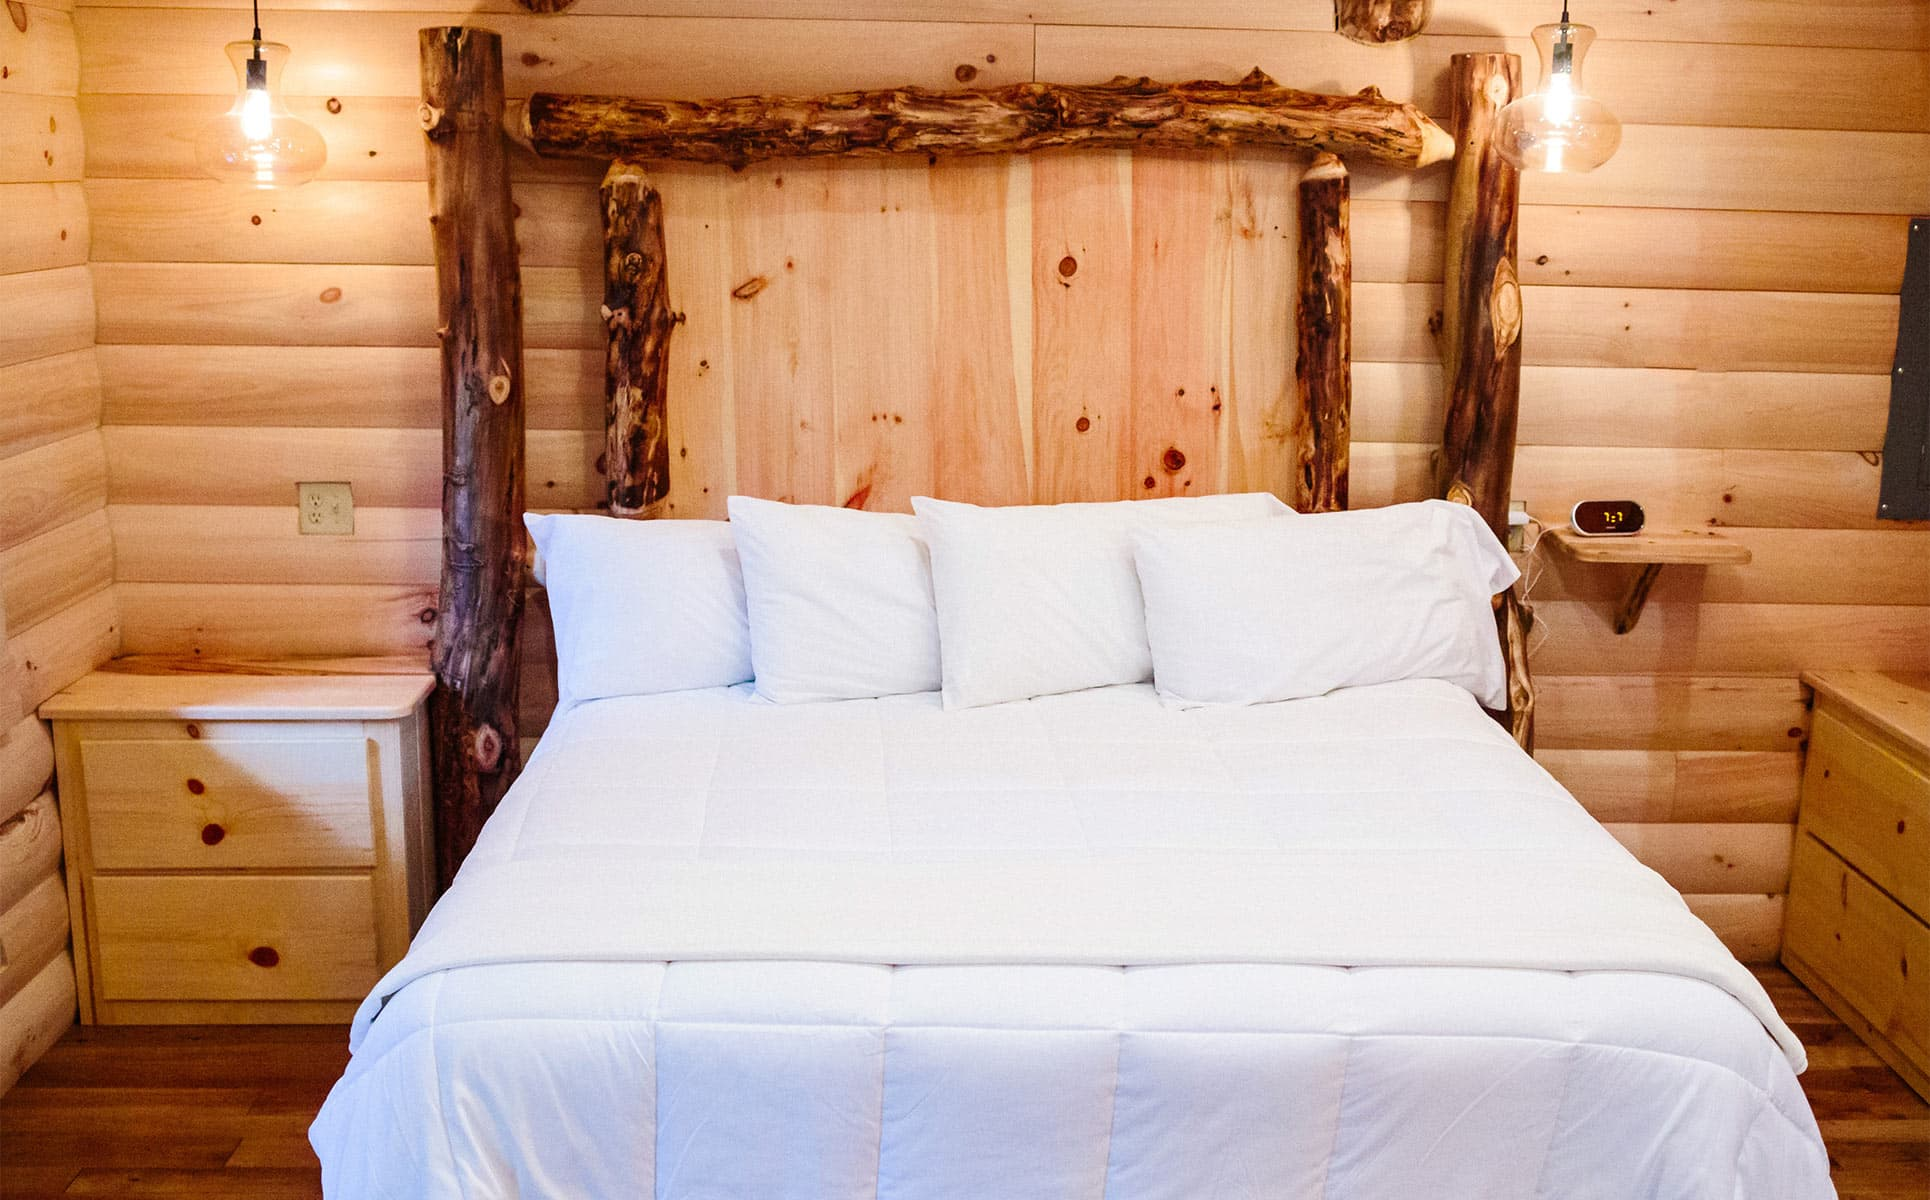 King Bed with wooden headboard